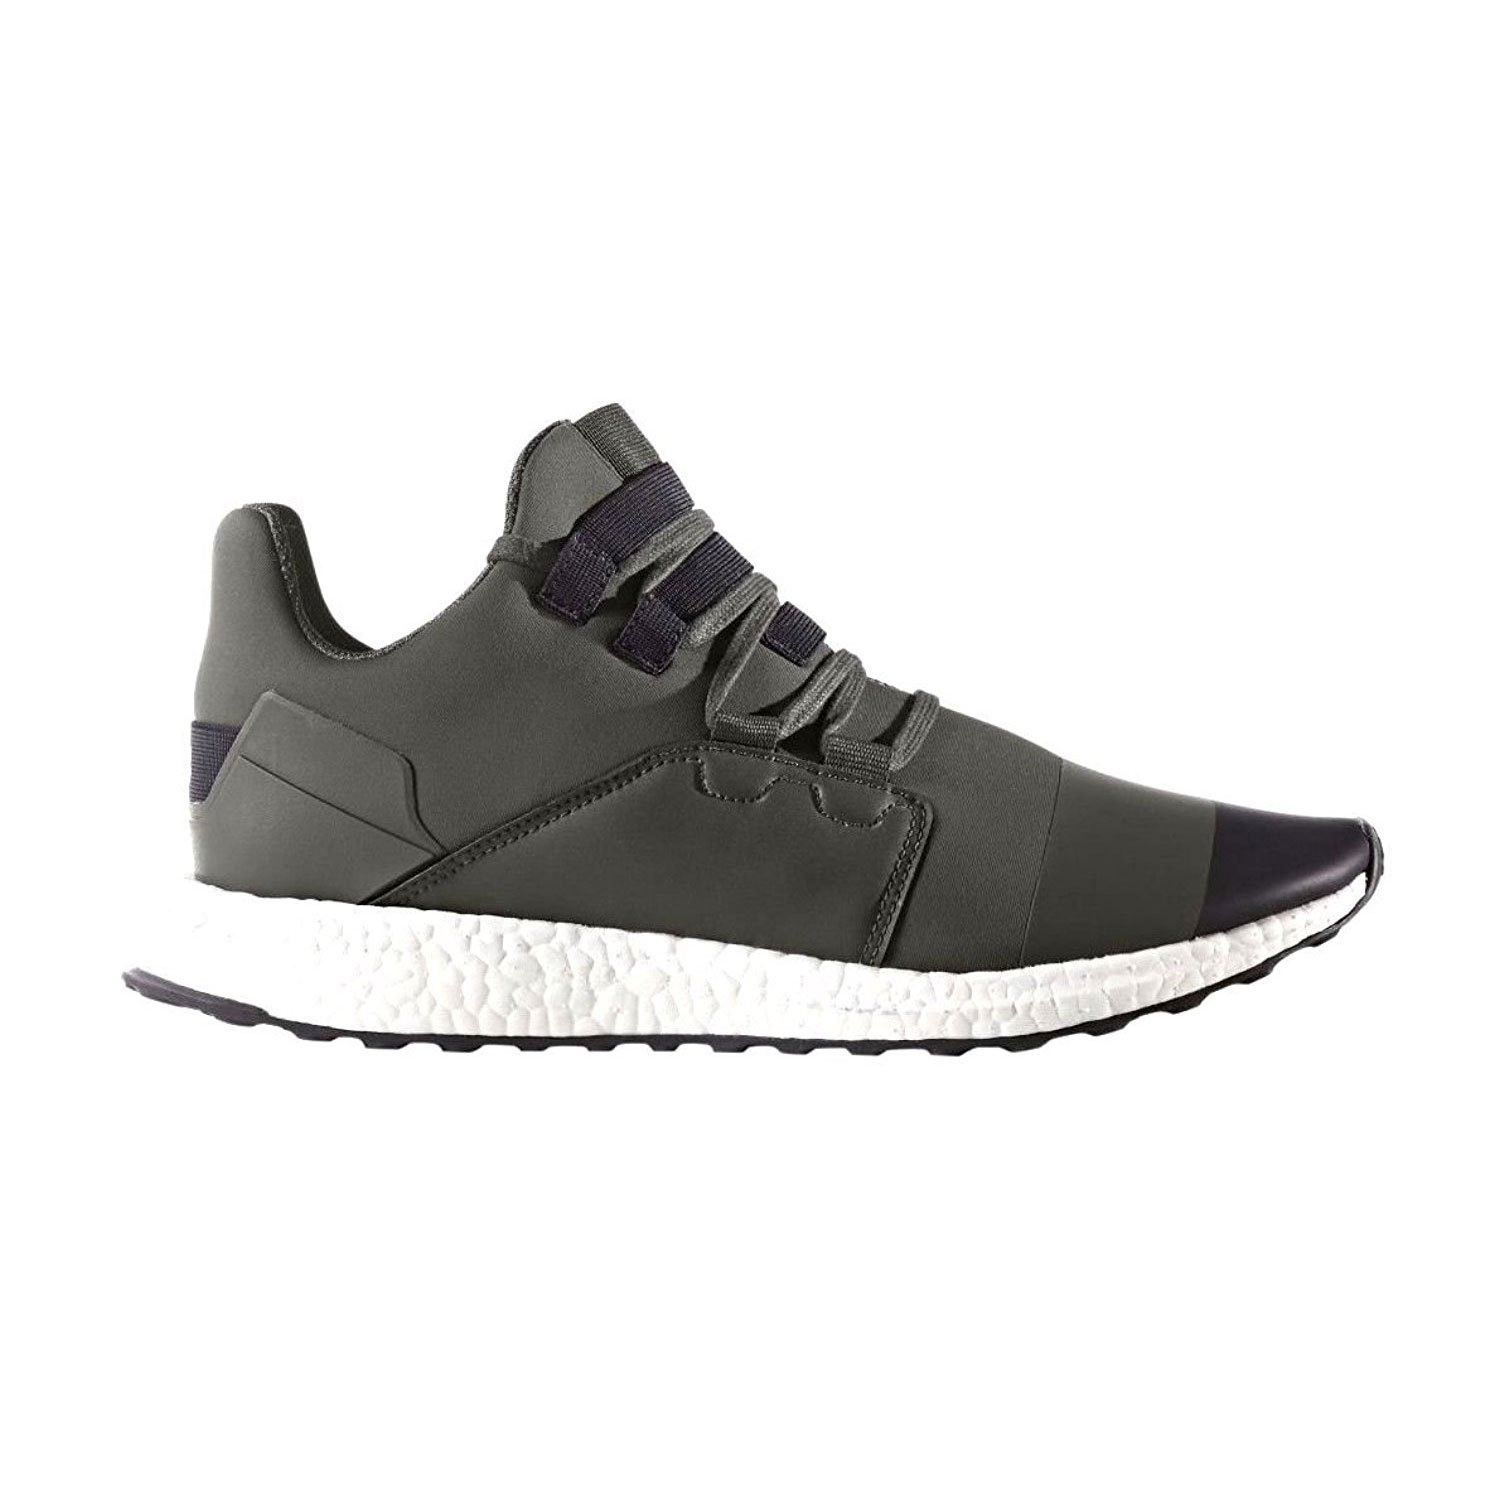 deaf3cf9ddbb5 adidas Y-3 by Yohji Yamamoto Men s Kozoko Low Black Olive Core Black Core  Black Shoe  Amazon.co.uk  Shoes   Bags